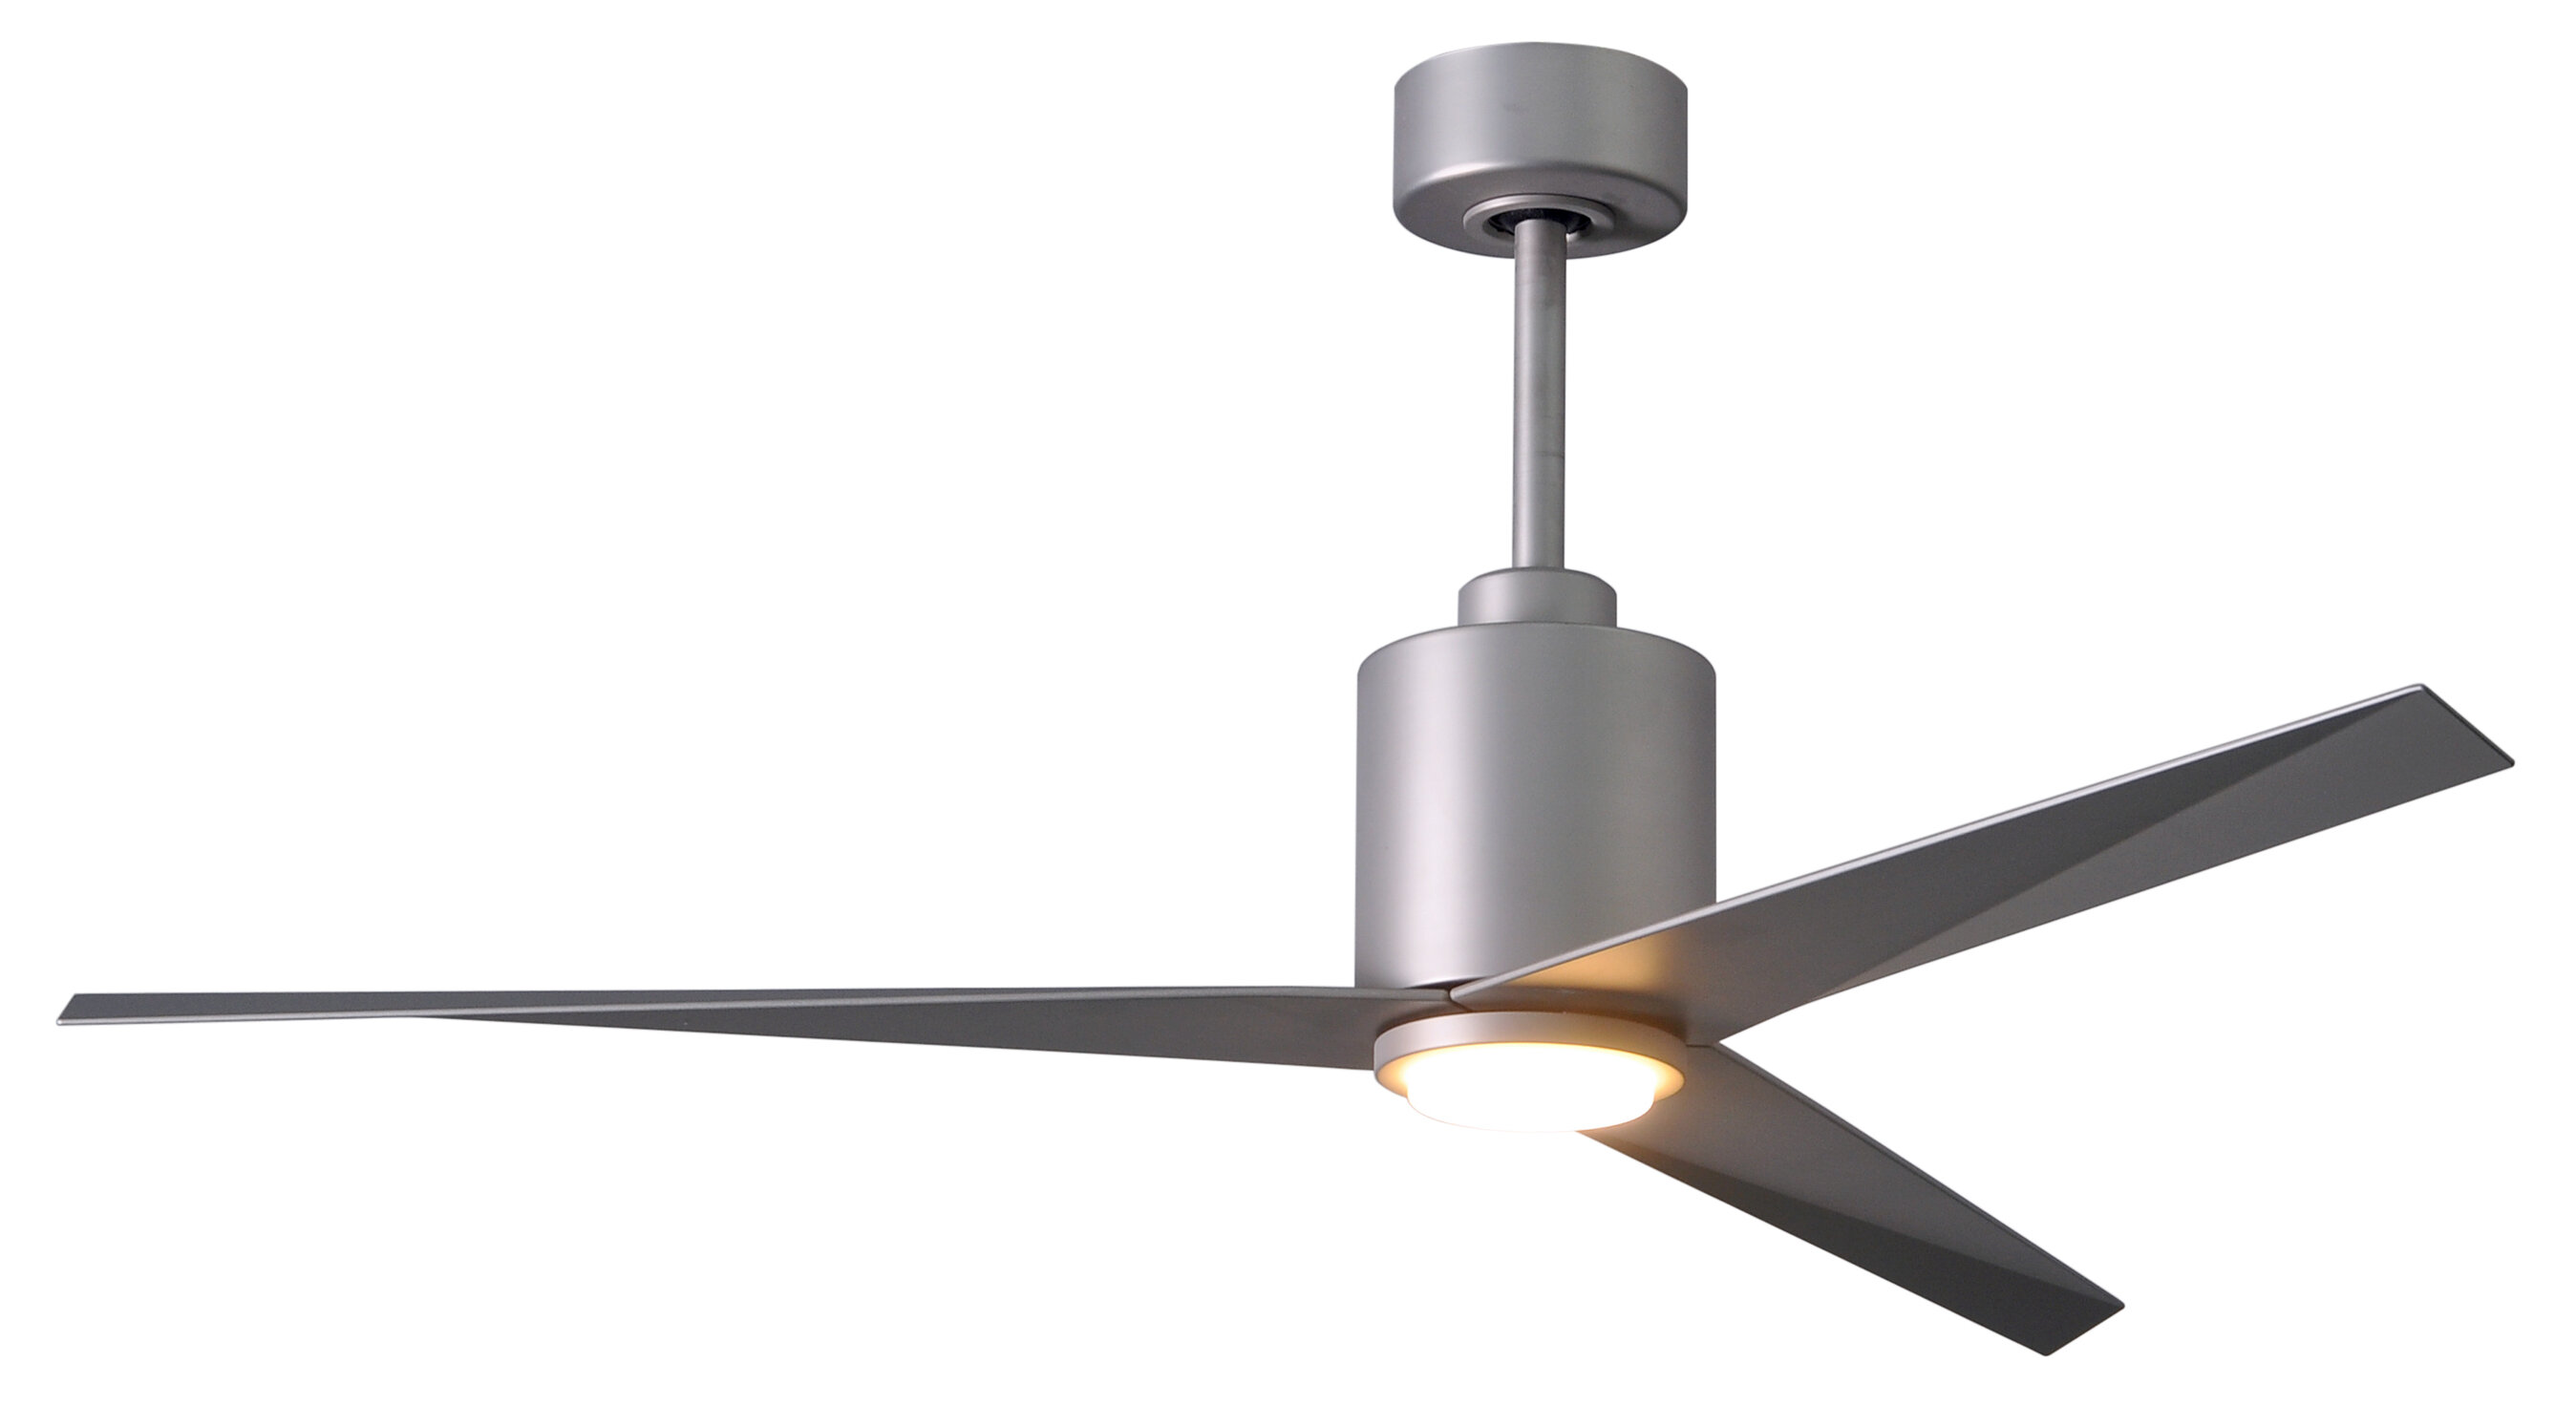 fan manufacturers blade life metal decorative com wholesale showroom alibaba suppliers at ceiling modern and fans